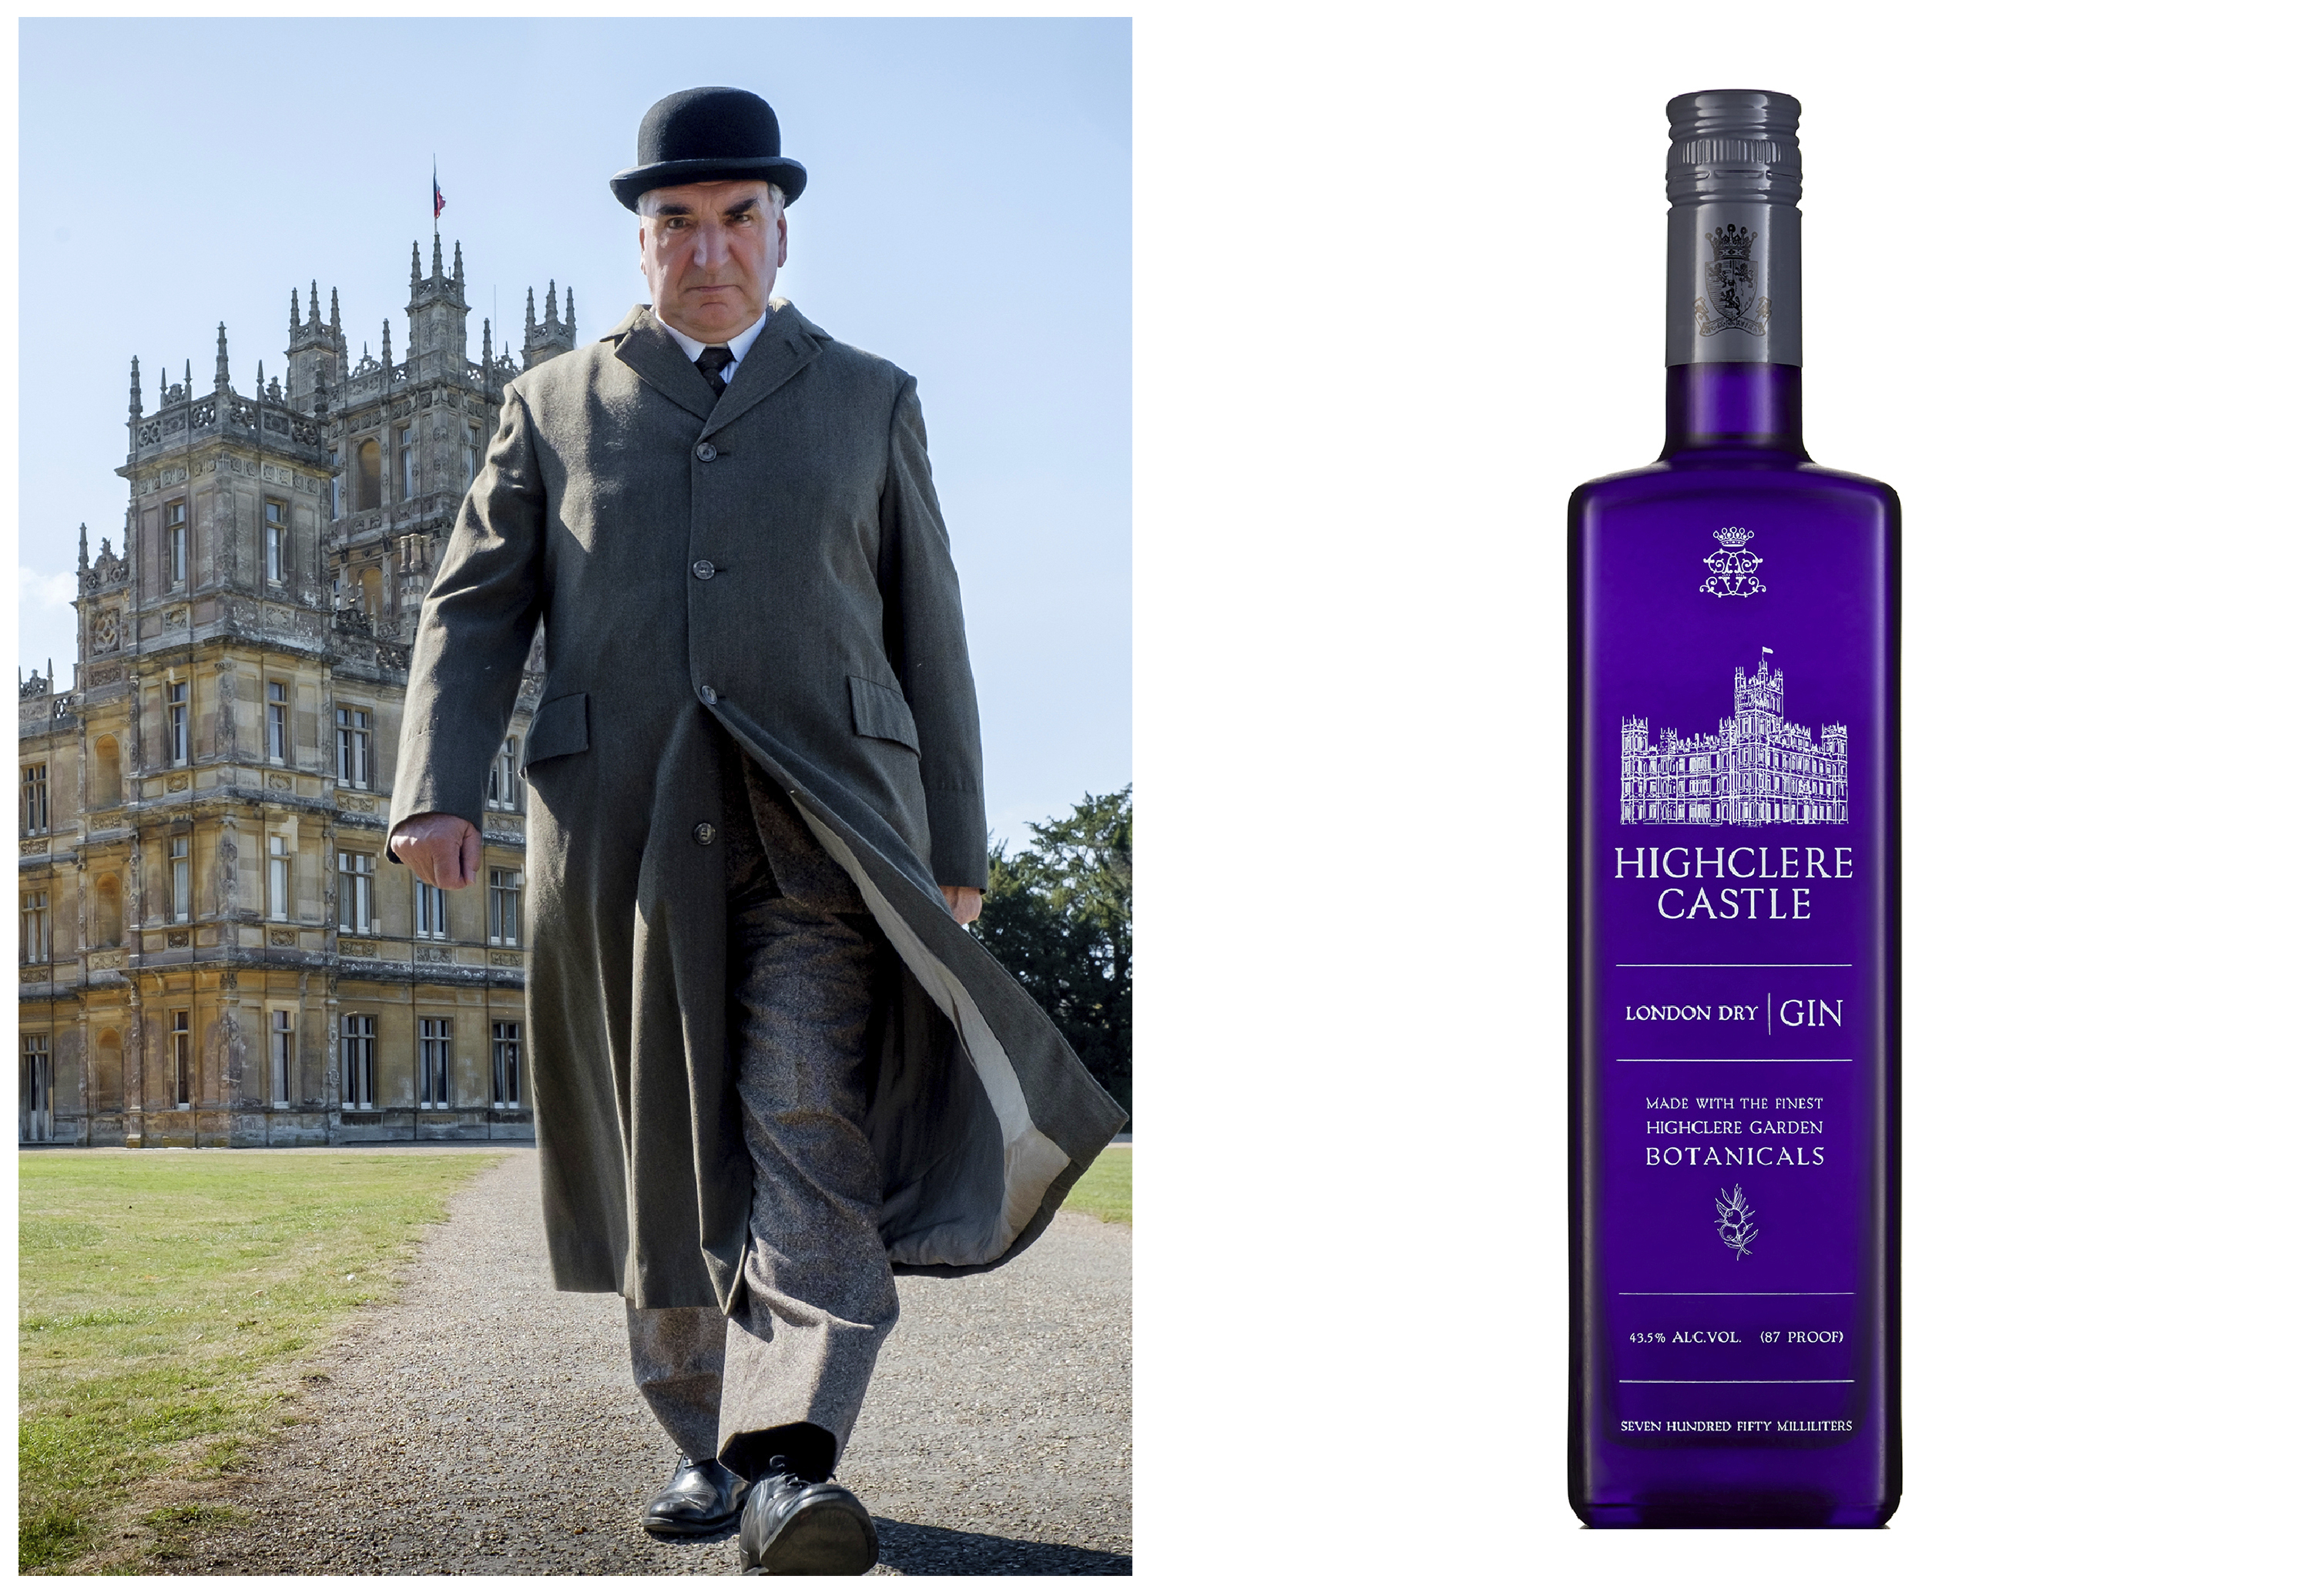 "Jim Carter portraying Mr. Carson walking away from Highclere Castle in a scene from the film ""Downtown Abbey,"" and a bottle of Highclere Castle Gin. It's inspired by botanicals from the estate's herb gardens originally planted in the 9th century."